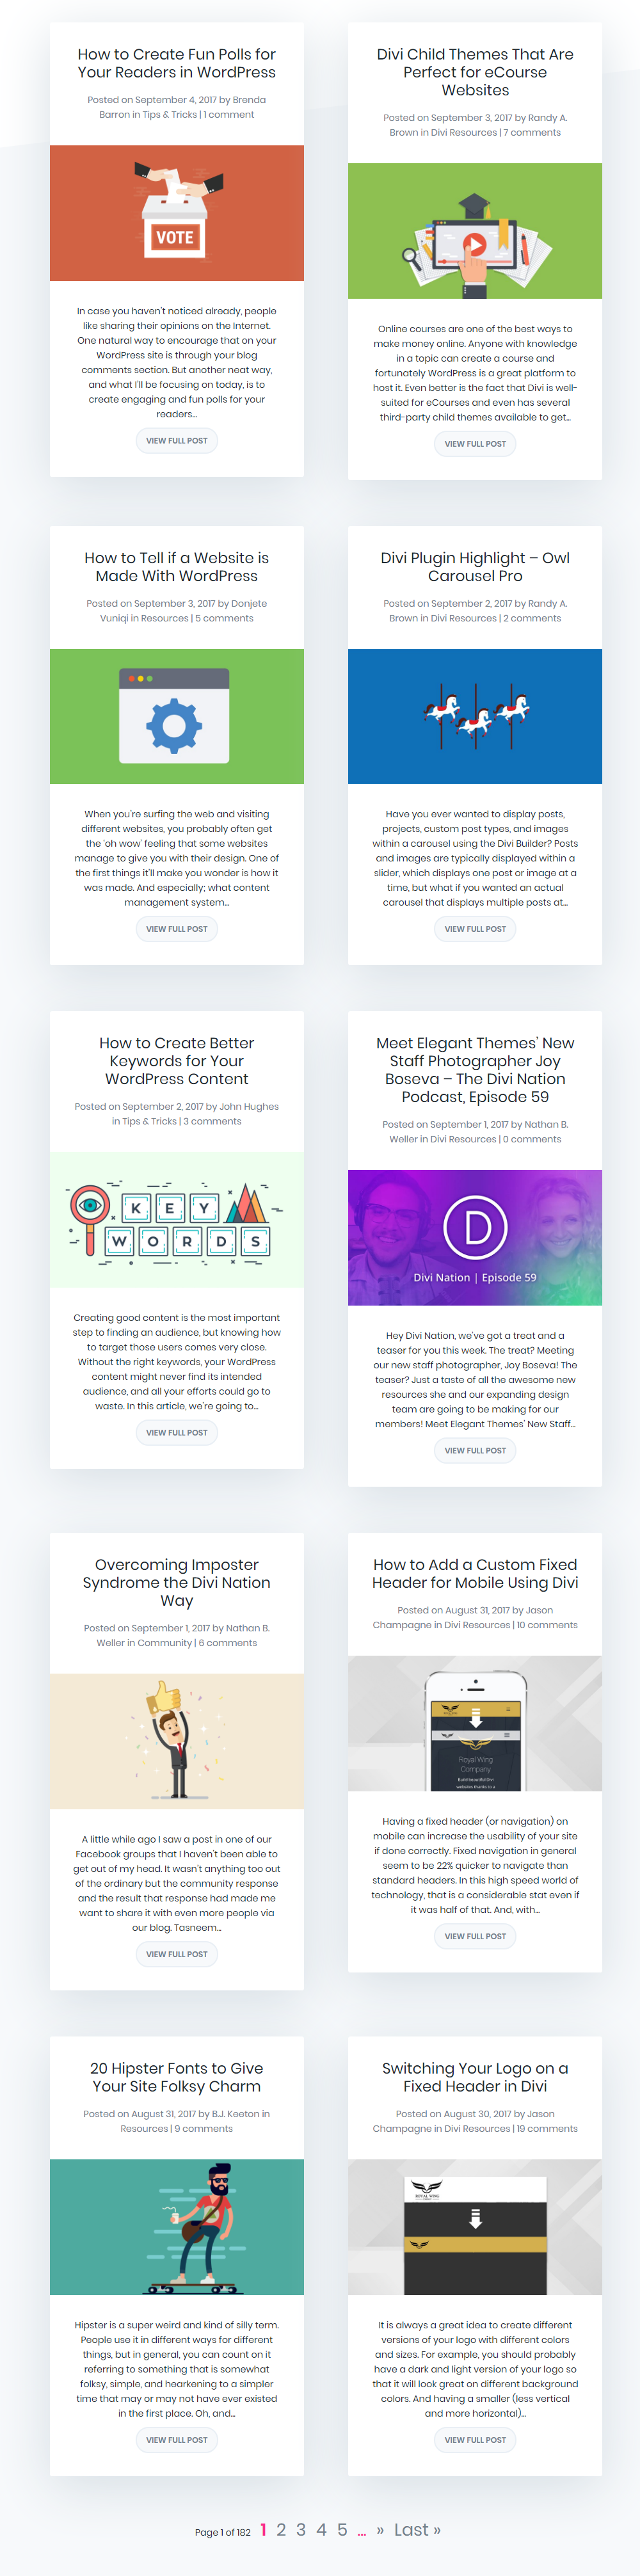 Numerous tips and tutorials to get the most out of Divi